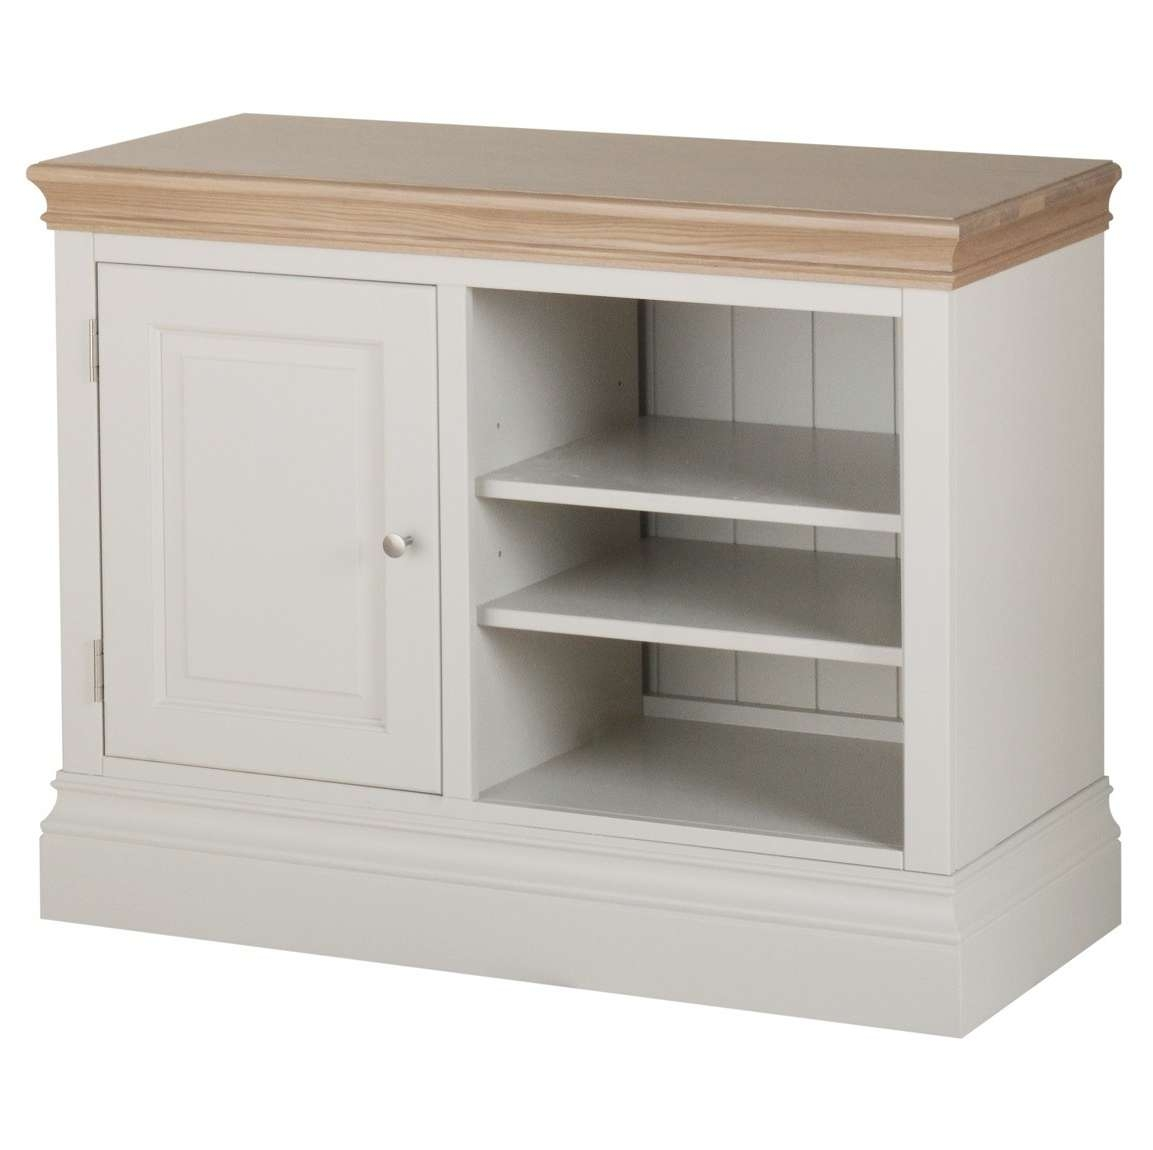 Country Oak And Painted Small Tv Cabinet | Oak Furniture Uk For Country Tv Stands (View 4 of 15)